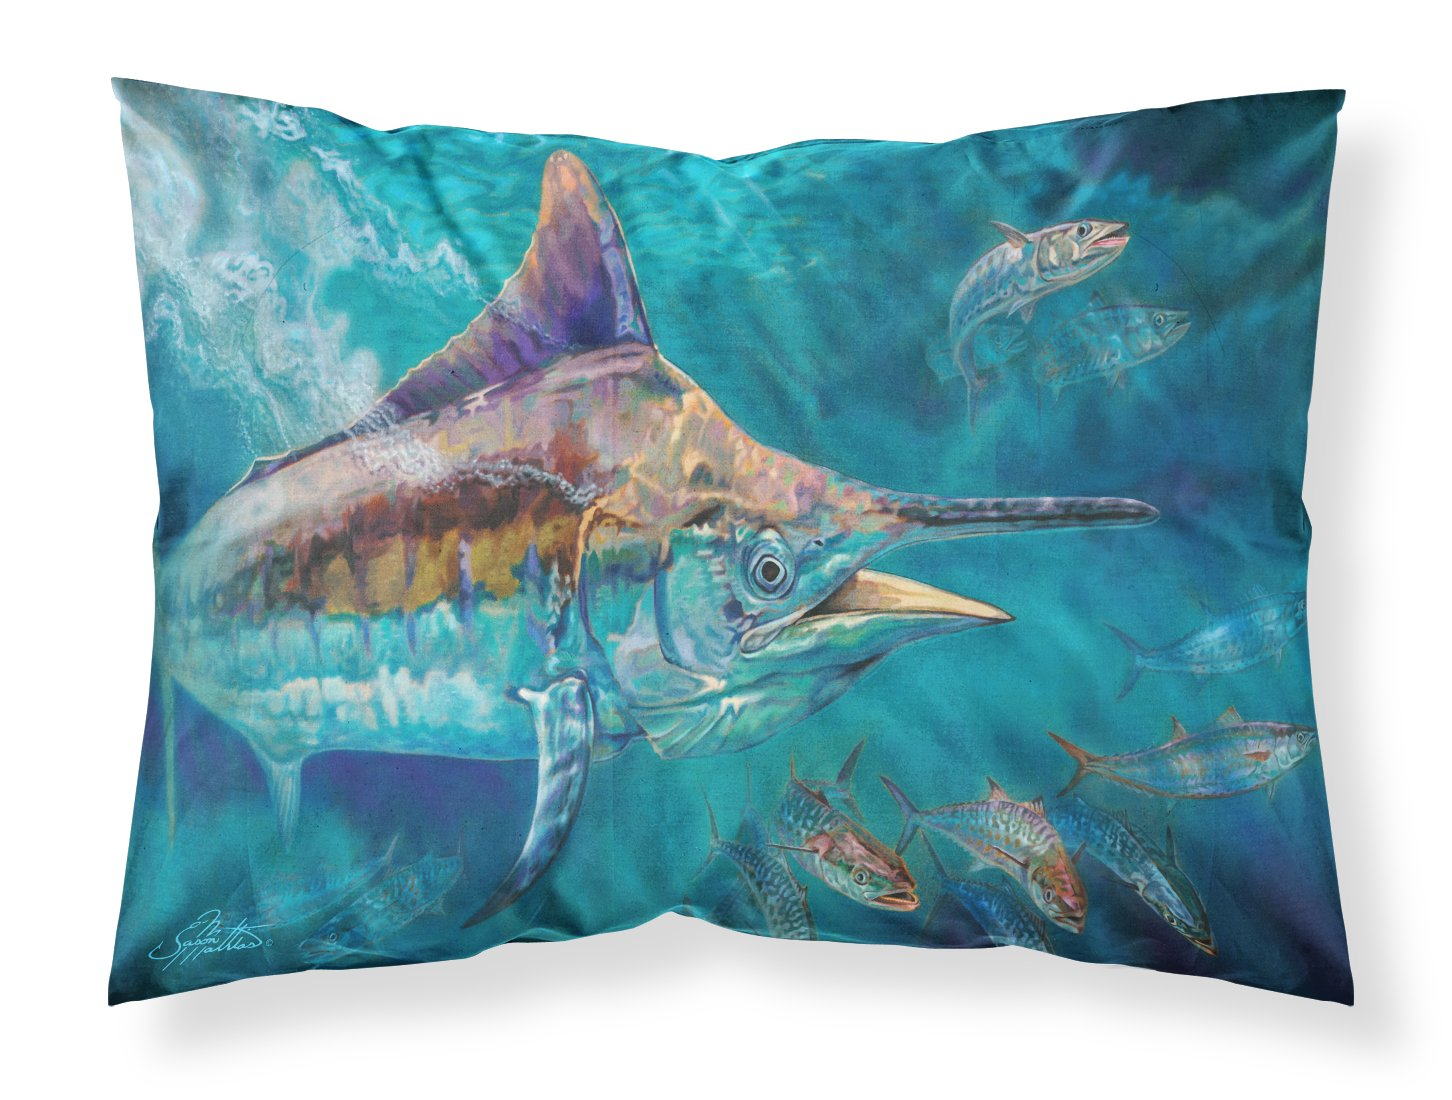 Liquid Metal Black Marlin Fabric Standard Pillowcase JMA2005PILLOWCASE by Caroline's Treasures